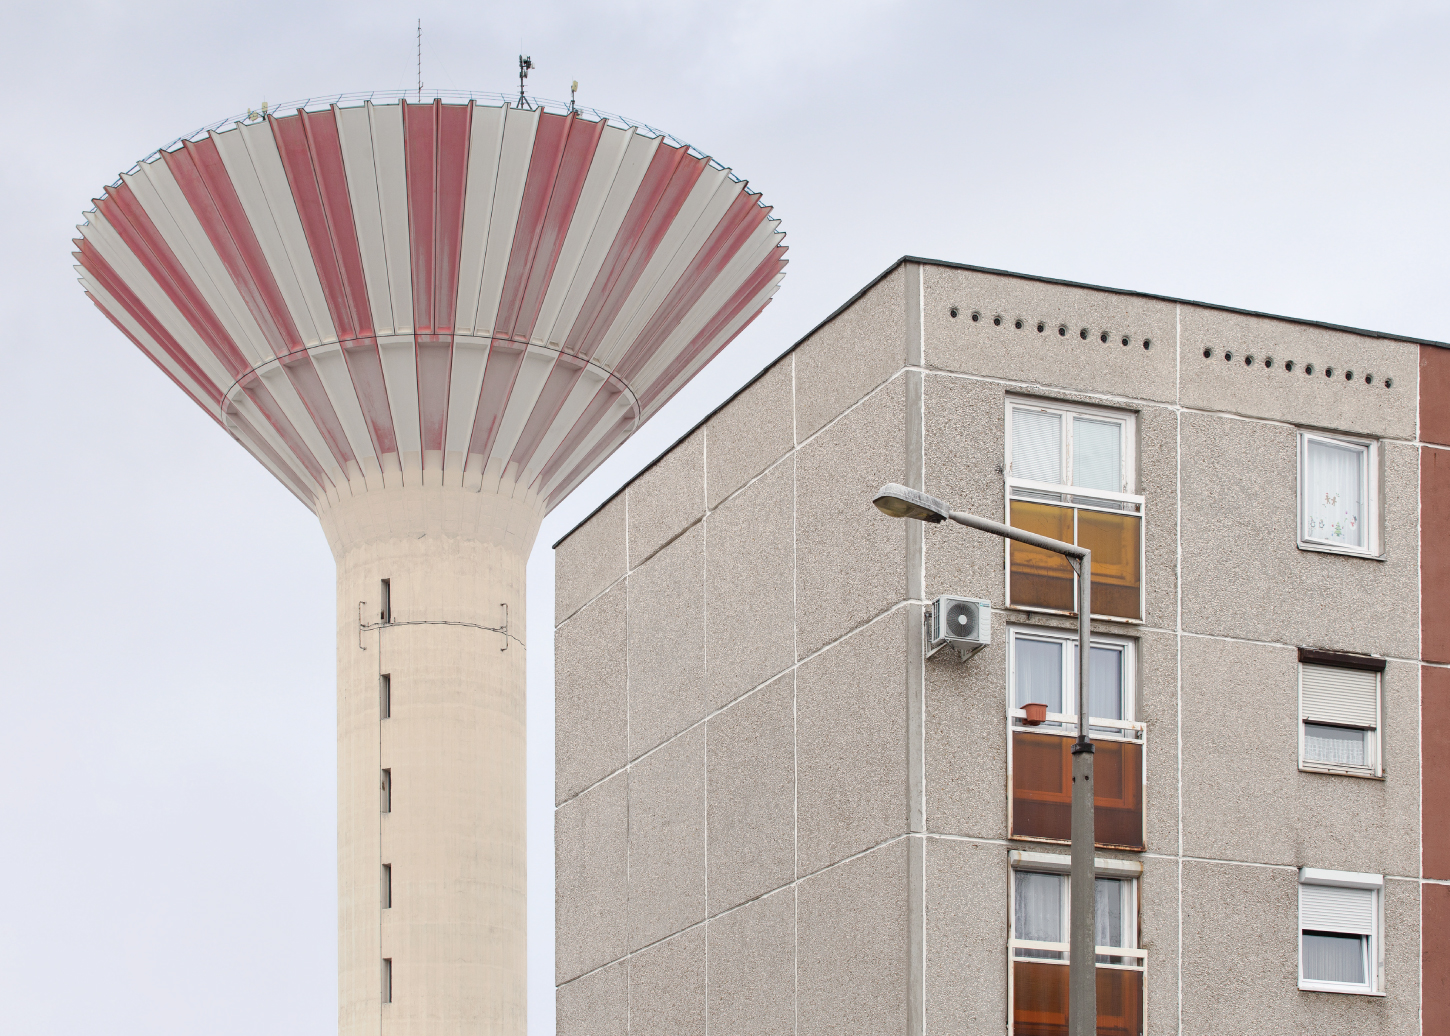 Panelház (prefab panel block) and water tower in Csepel, the XXI district of Budapest (Hungary)